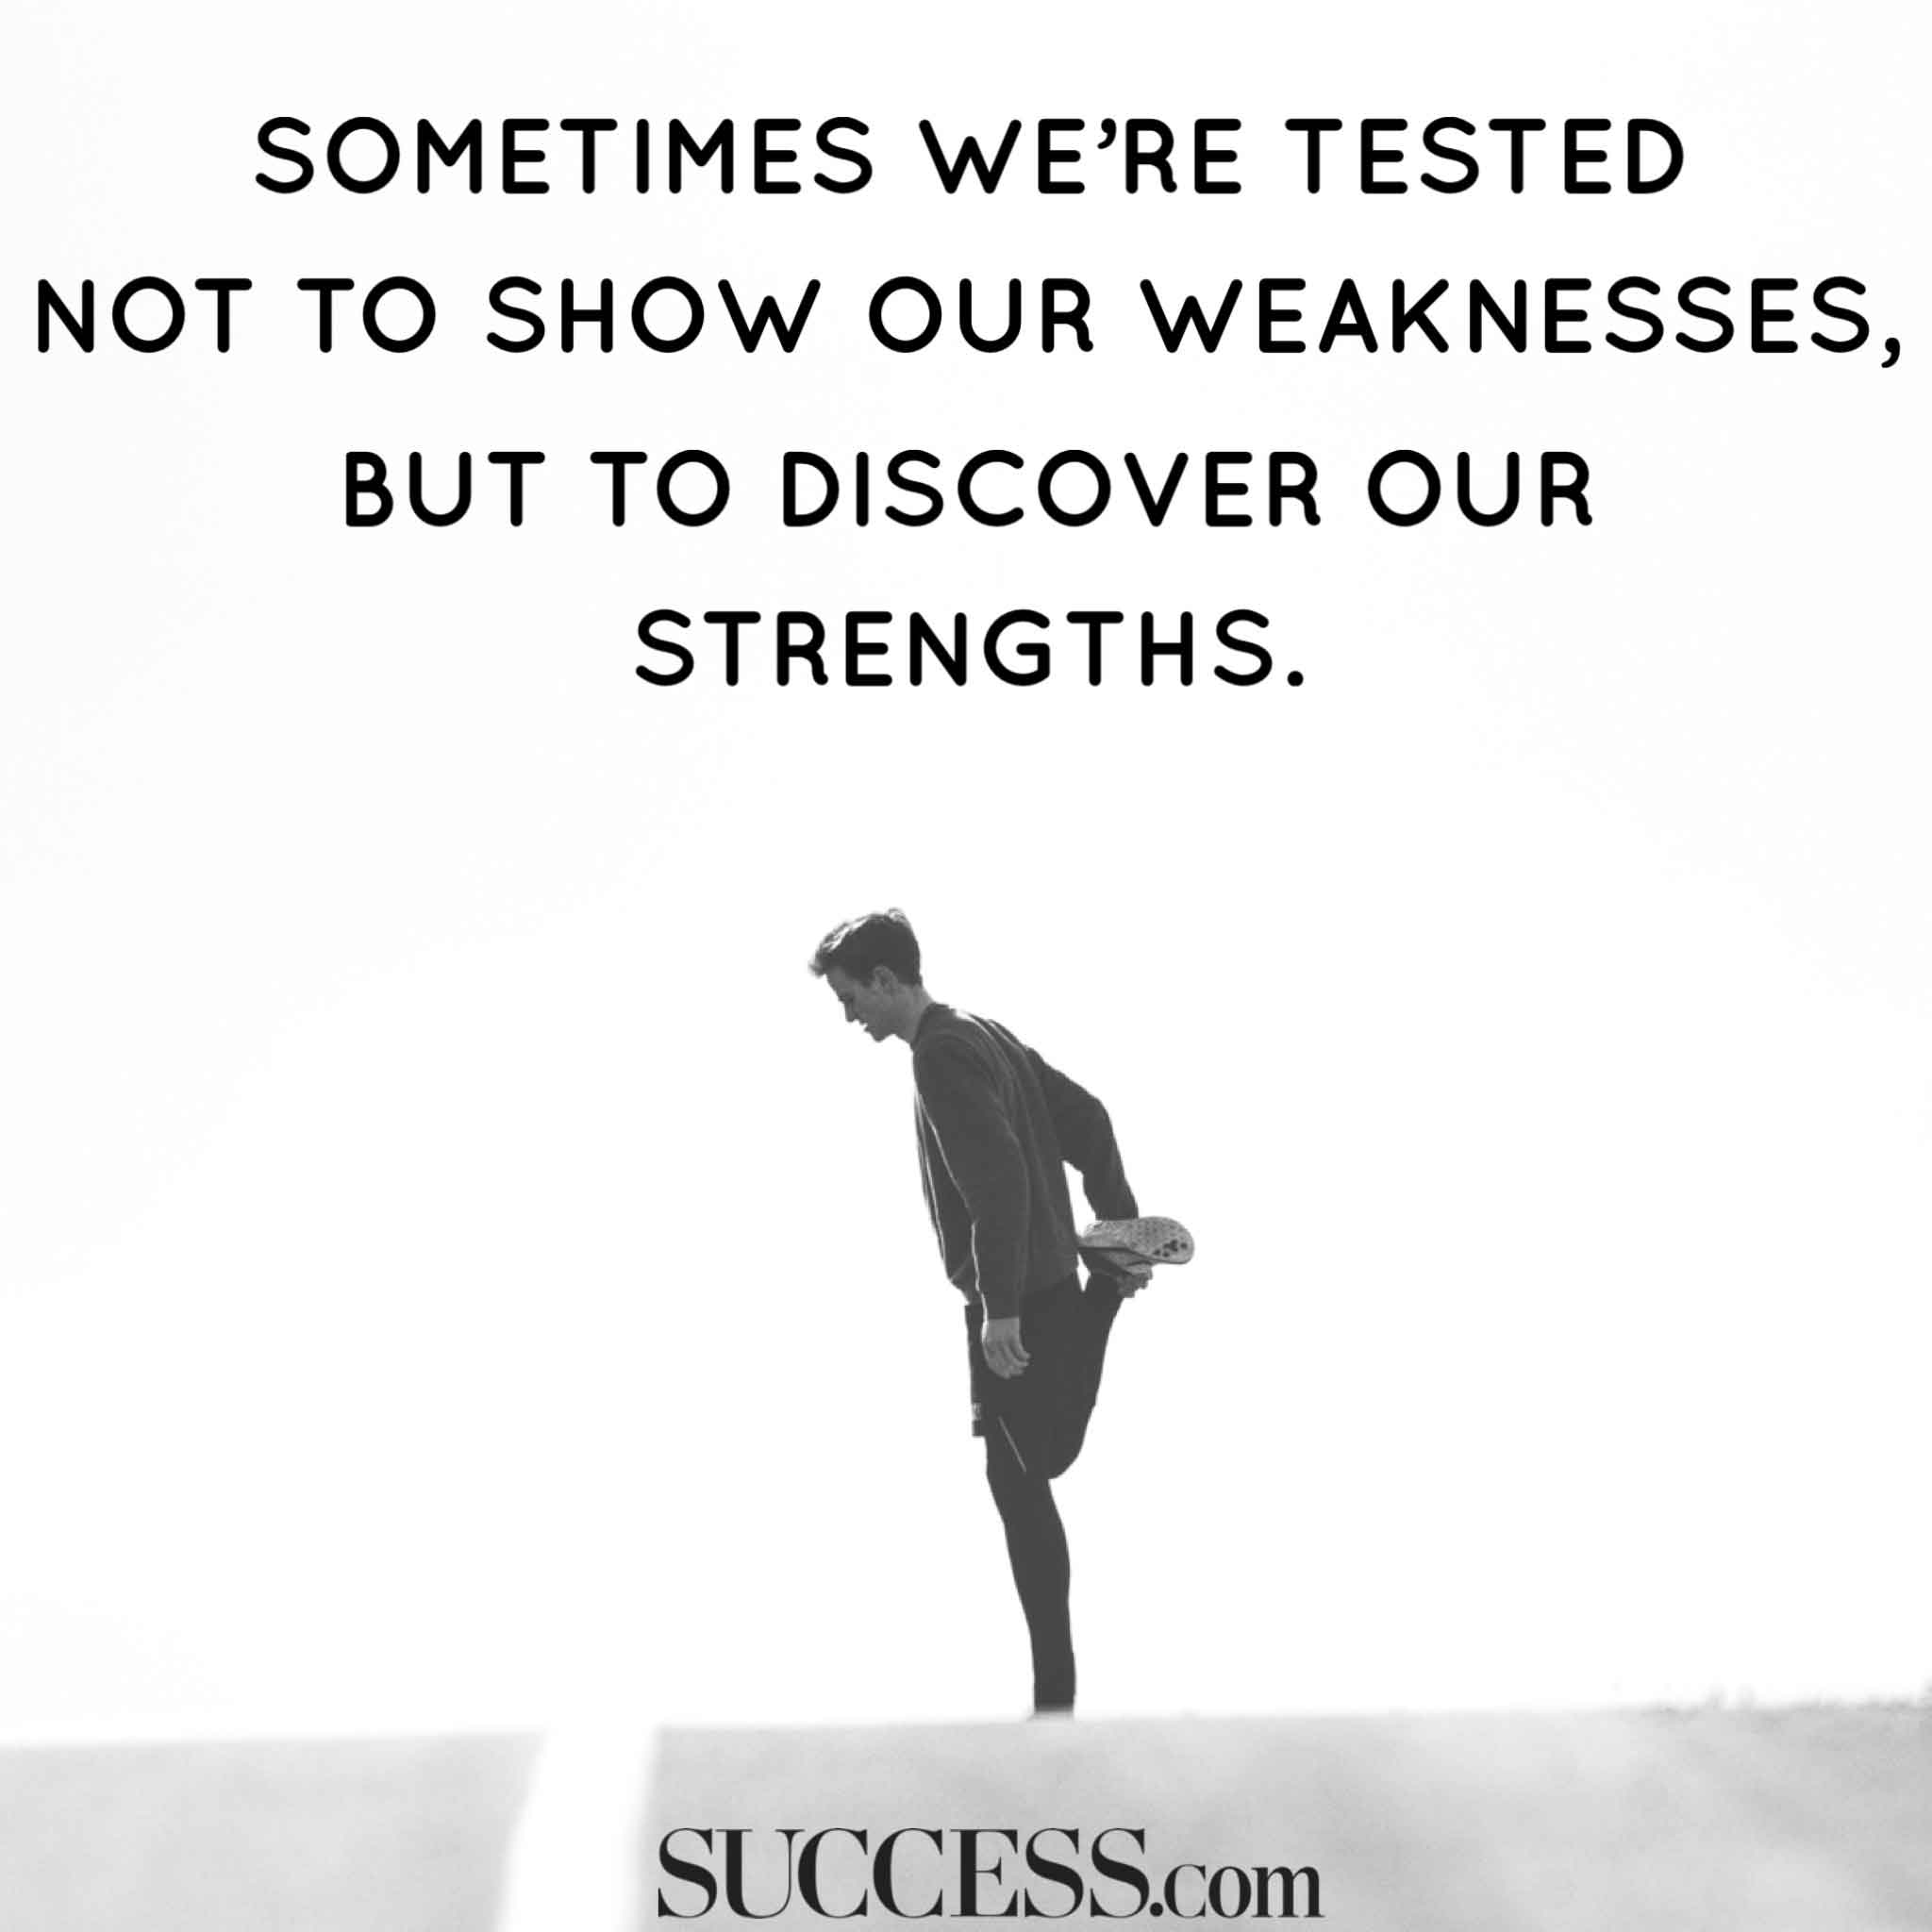 [IMAGE] Find your strengths.